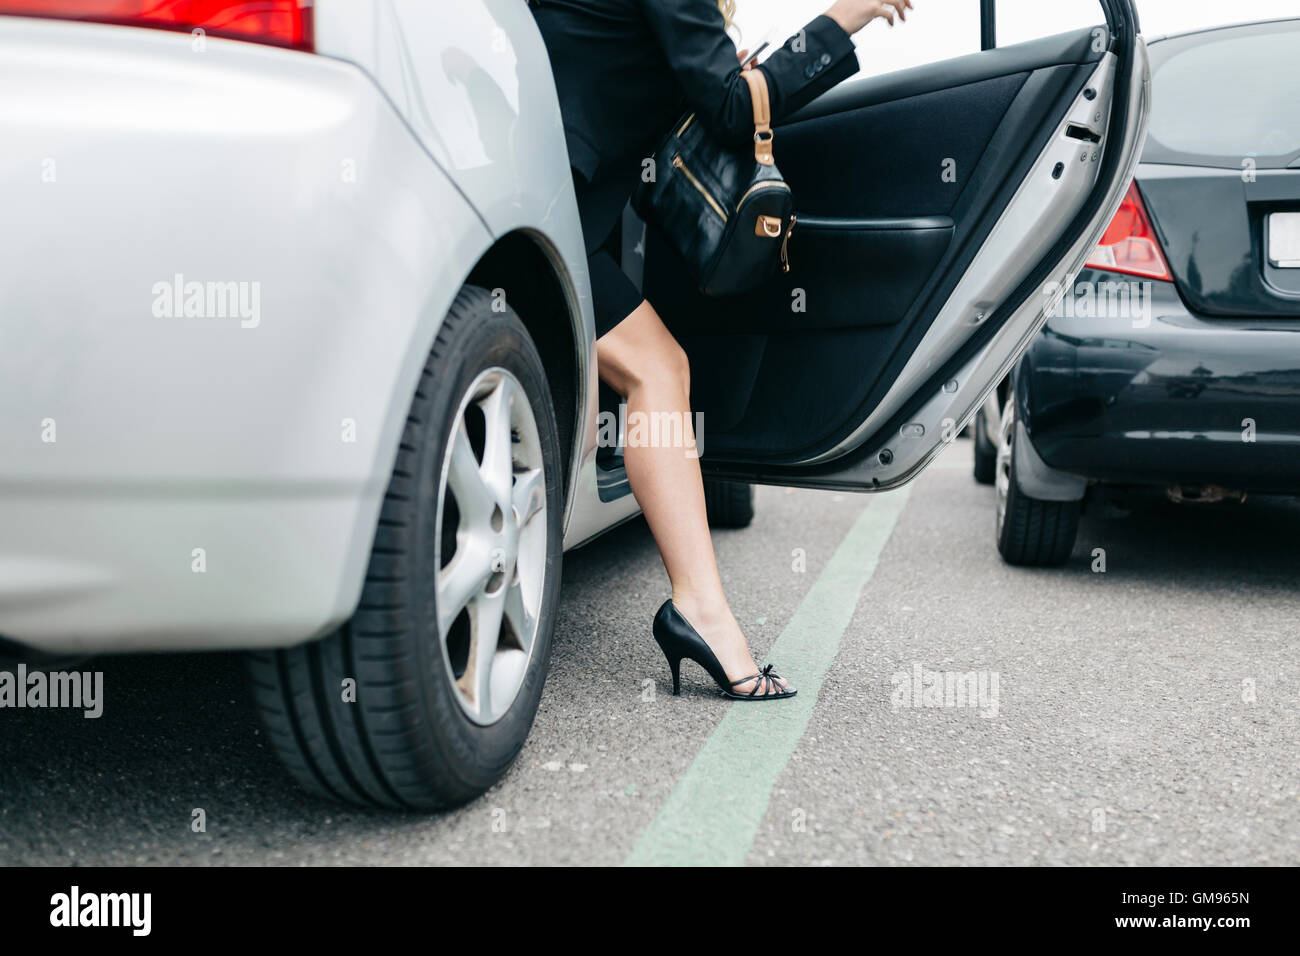 Woman Wearing High Heels Getting Out Of Car Stock Photo